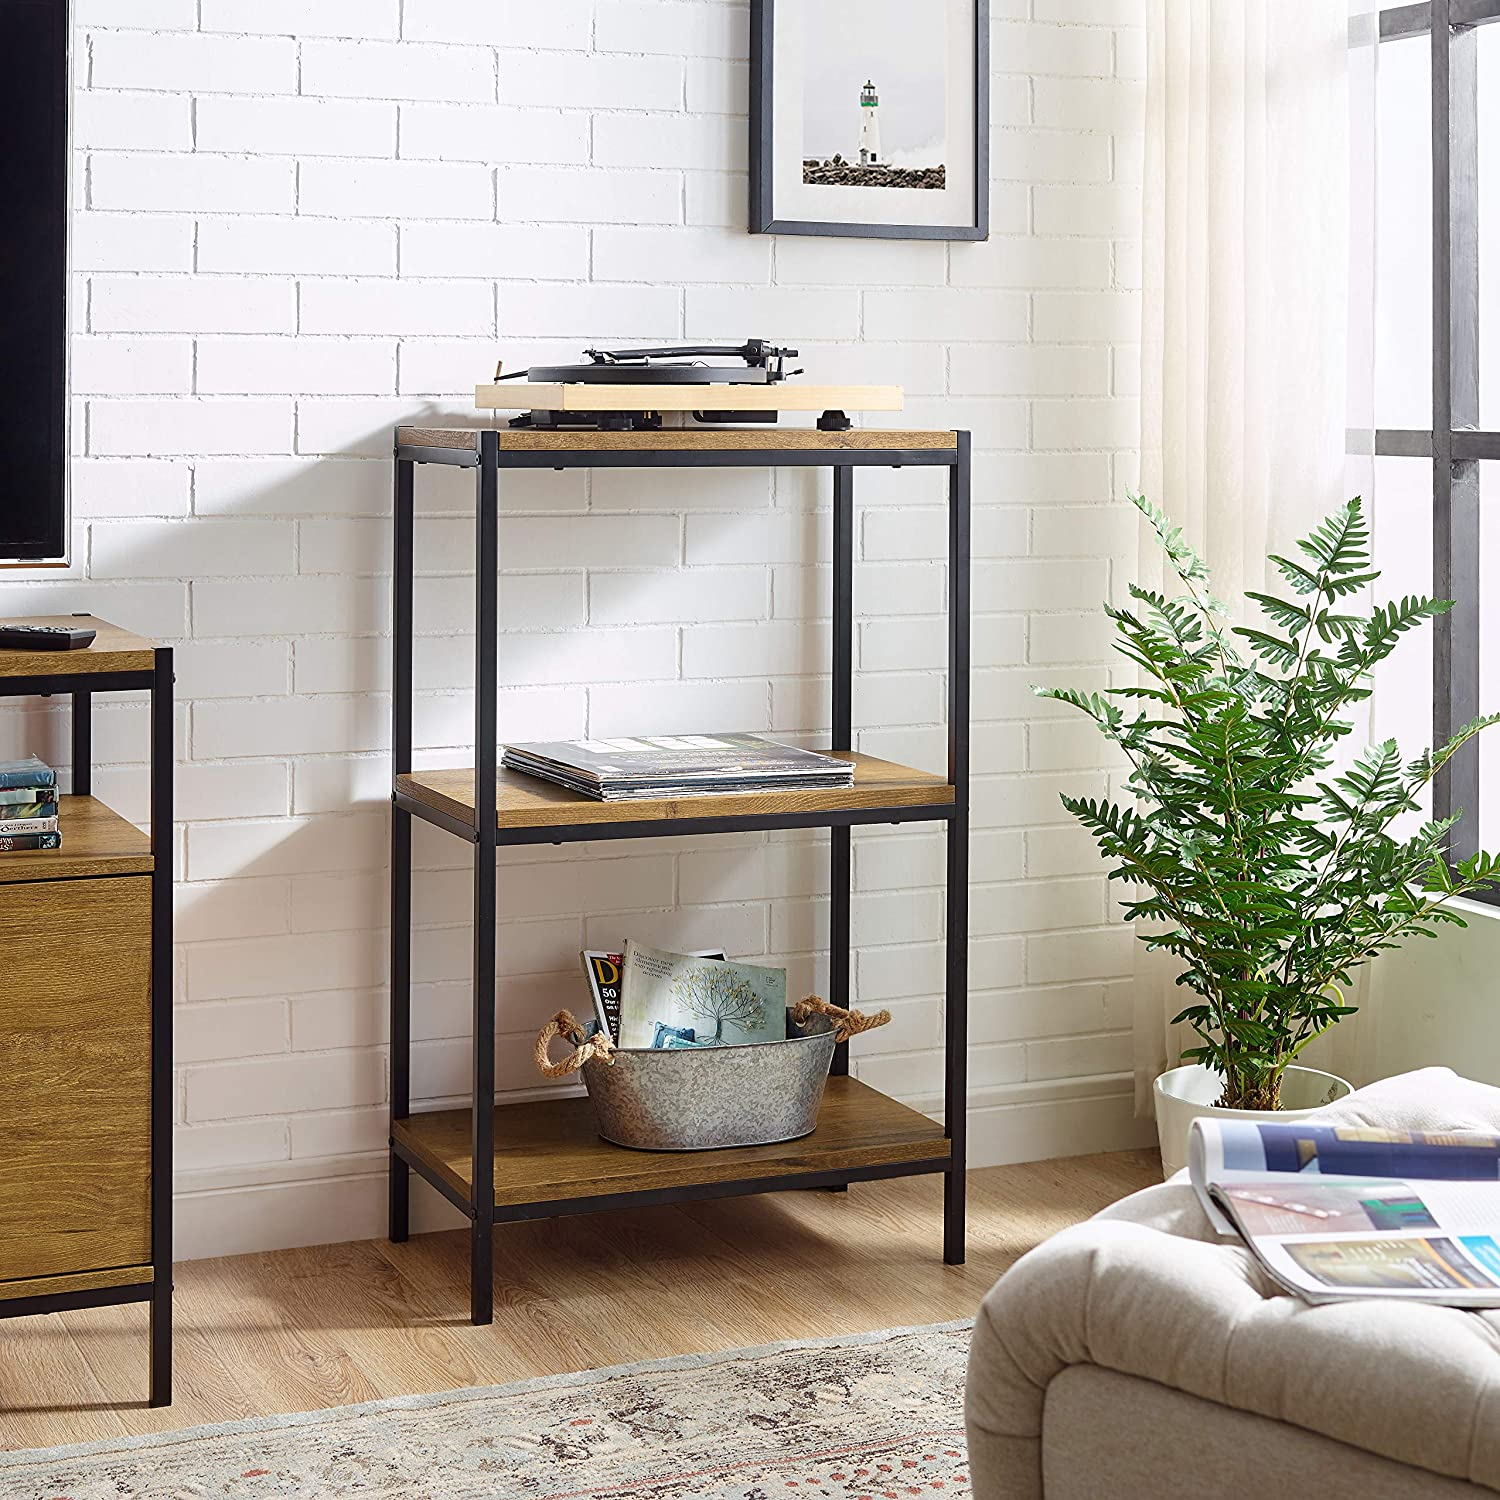 3 Tier Bookshelf by CAFFOZ Furniture Designs Rustic Industrial Bookcase with Modern Open Shelves Oak Brown Wood Look Accent Furniture Metal Frame Storage Rack Shelf Unit Bathroom Living Room